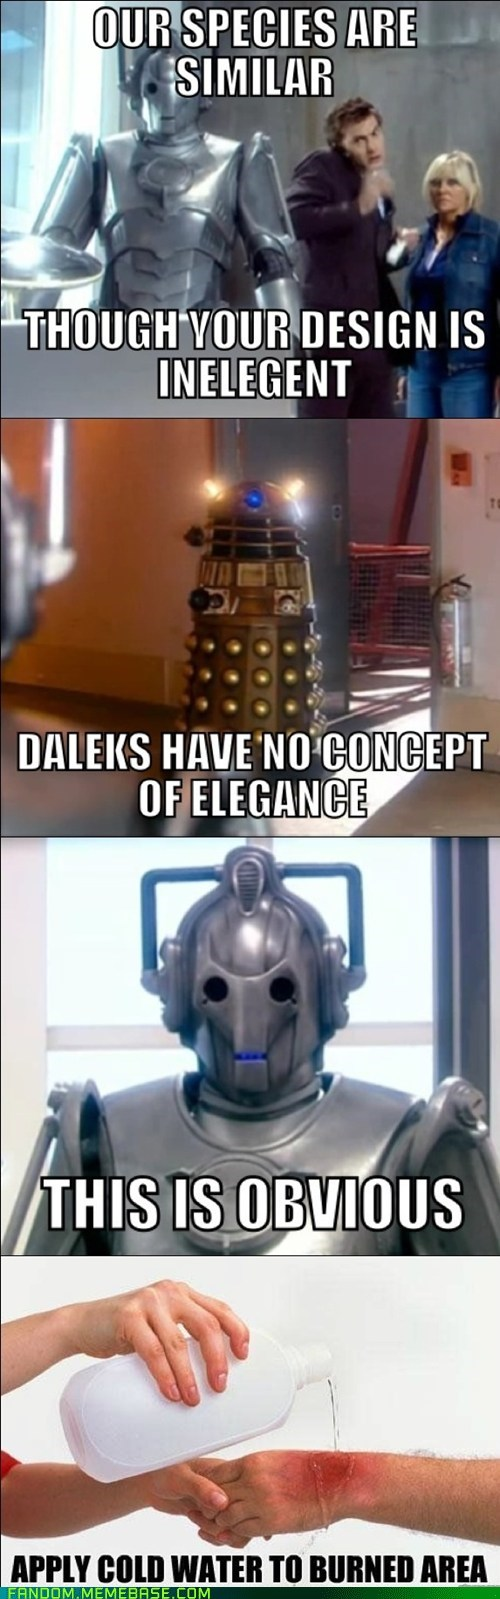 dalek cybermen doctor who - 6894542336